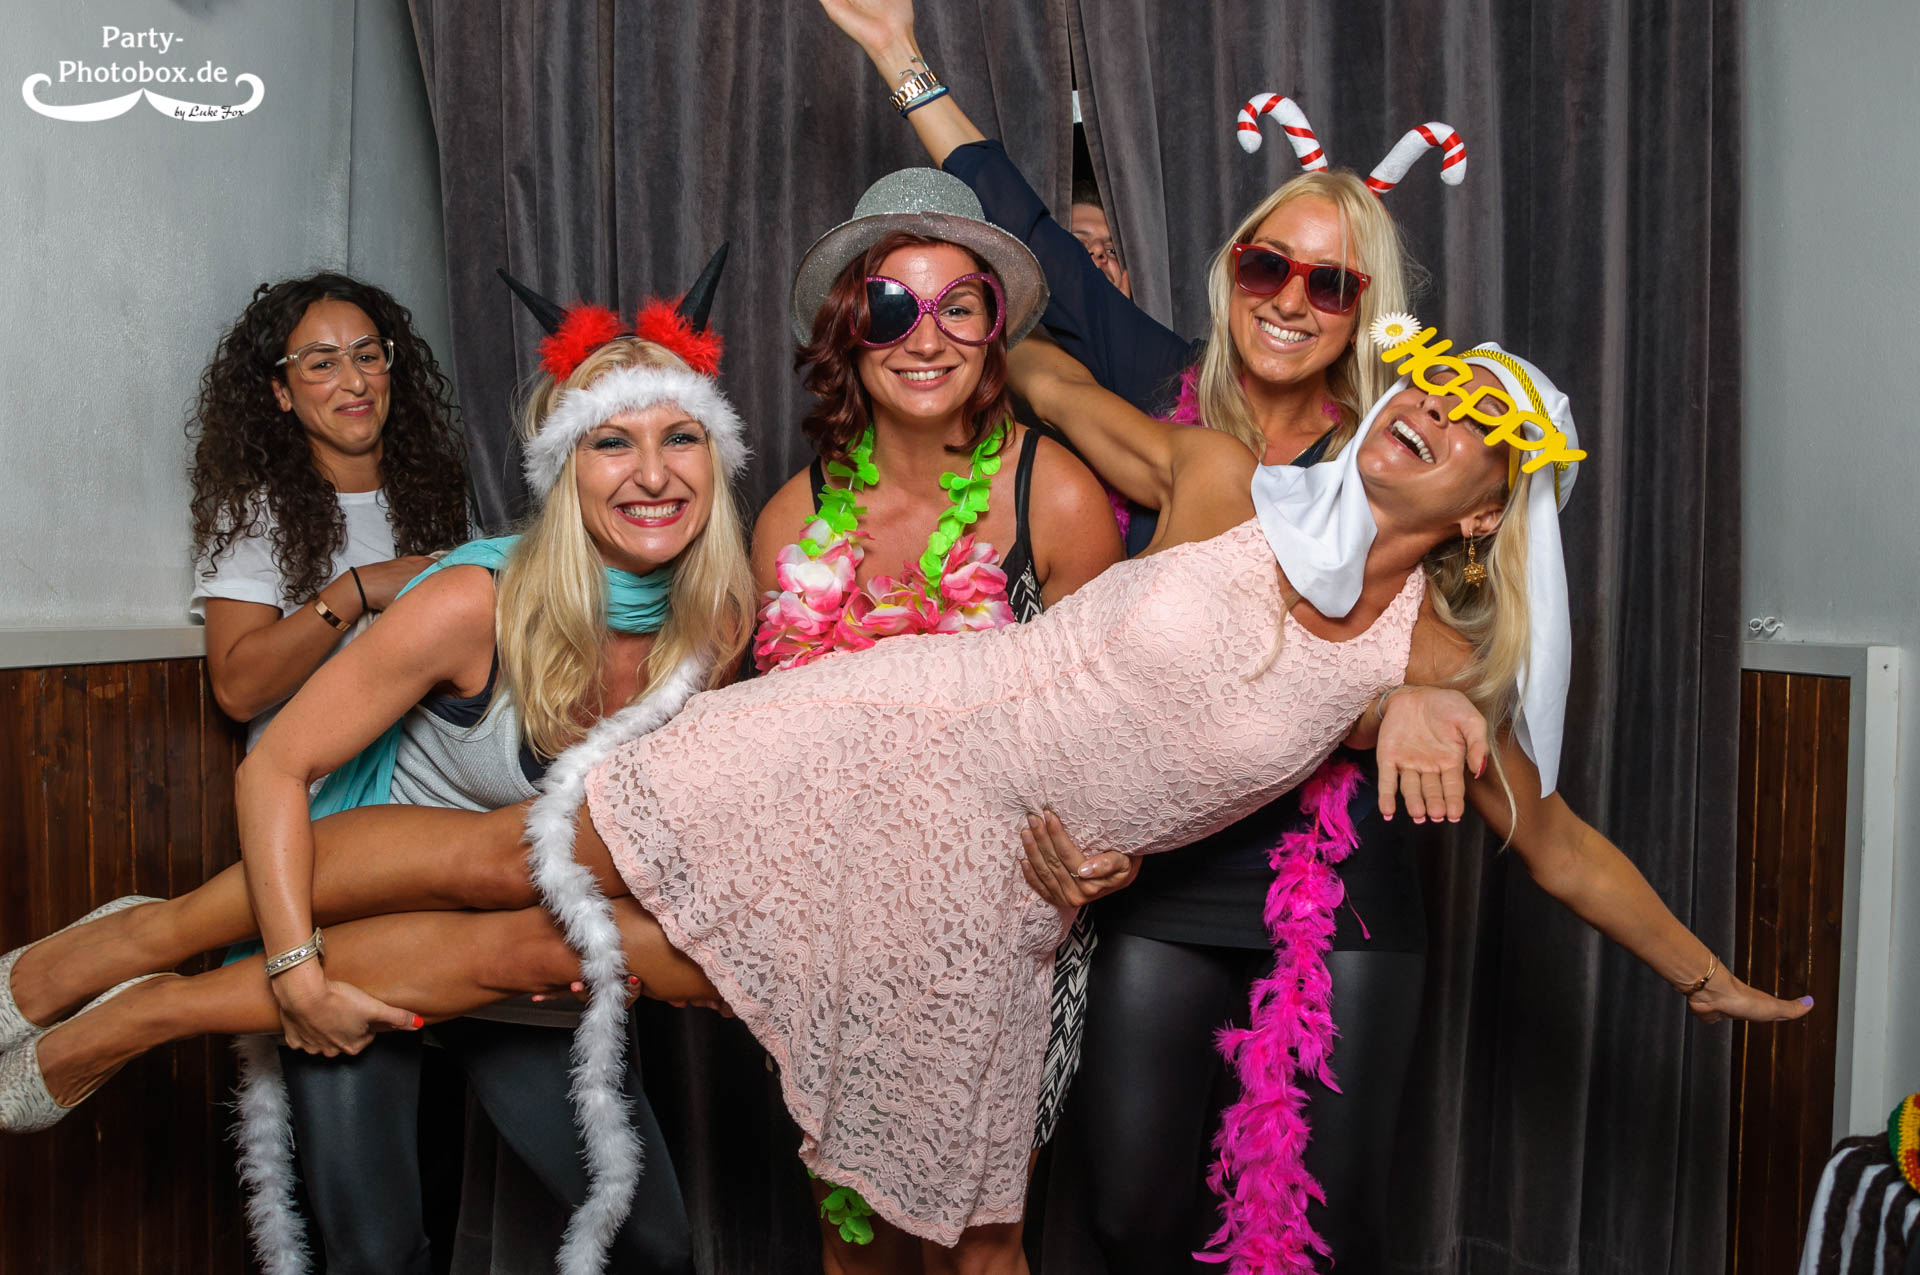 Photobox Party Party Photobox Photobooth Fotobox Darmstadt Frankfurt